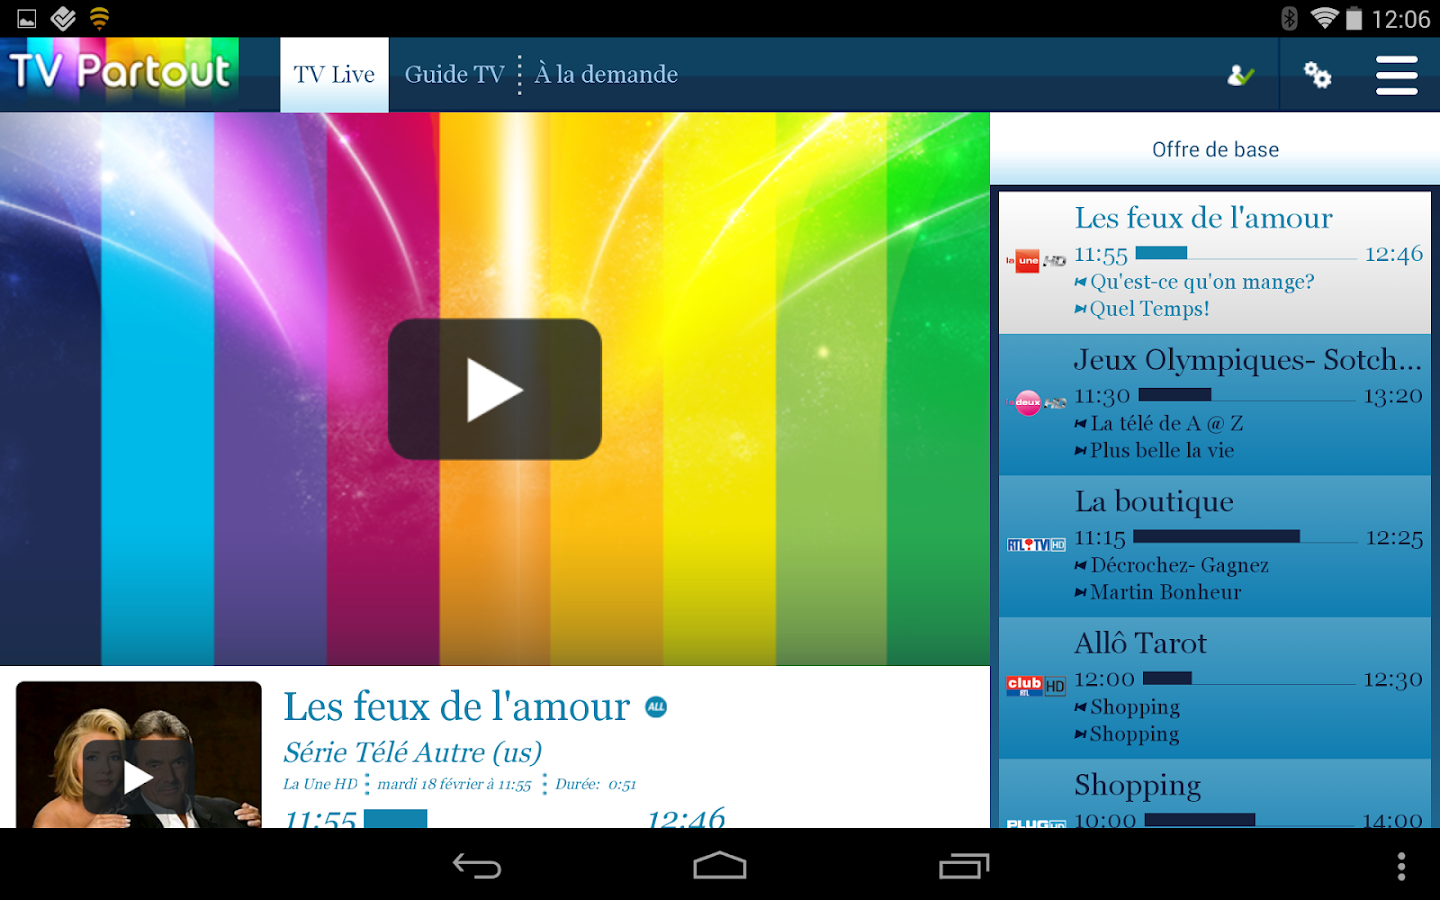 TV Overal / TV Partout - screenshot